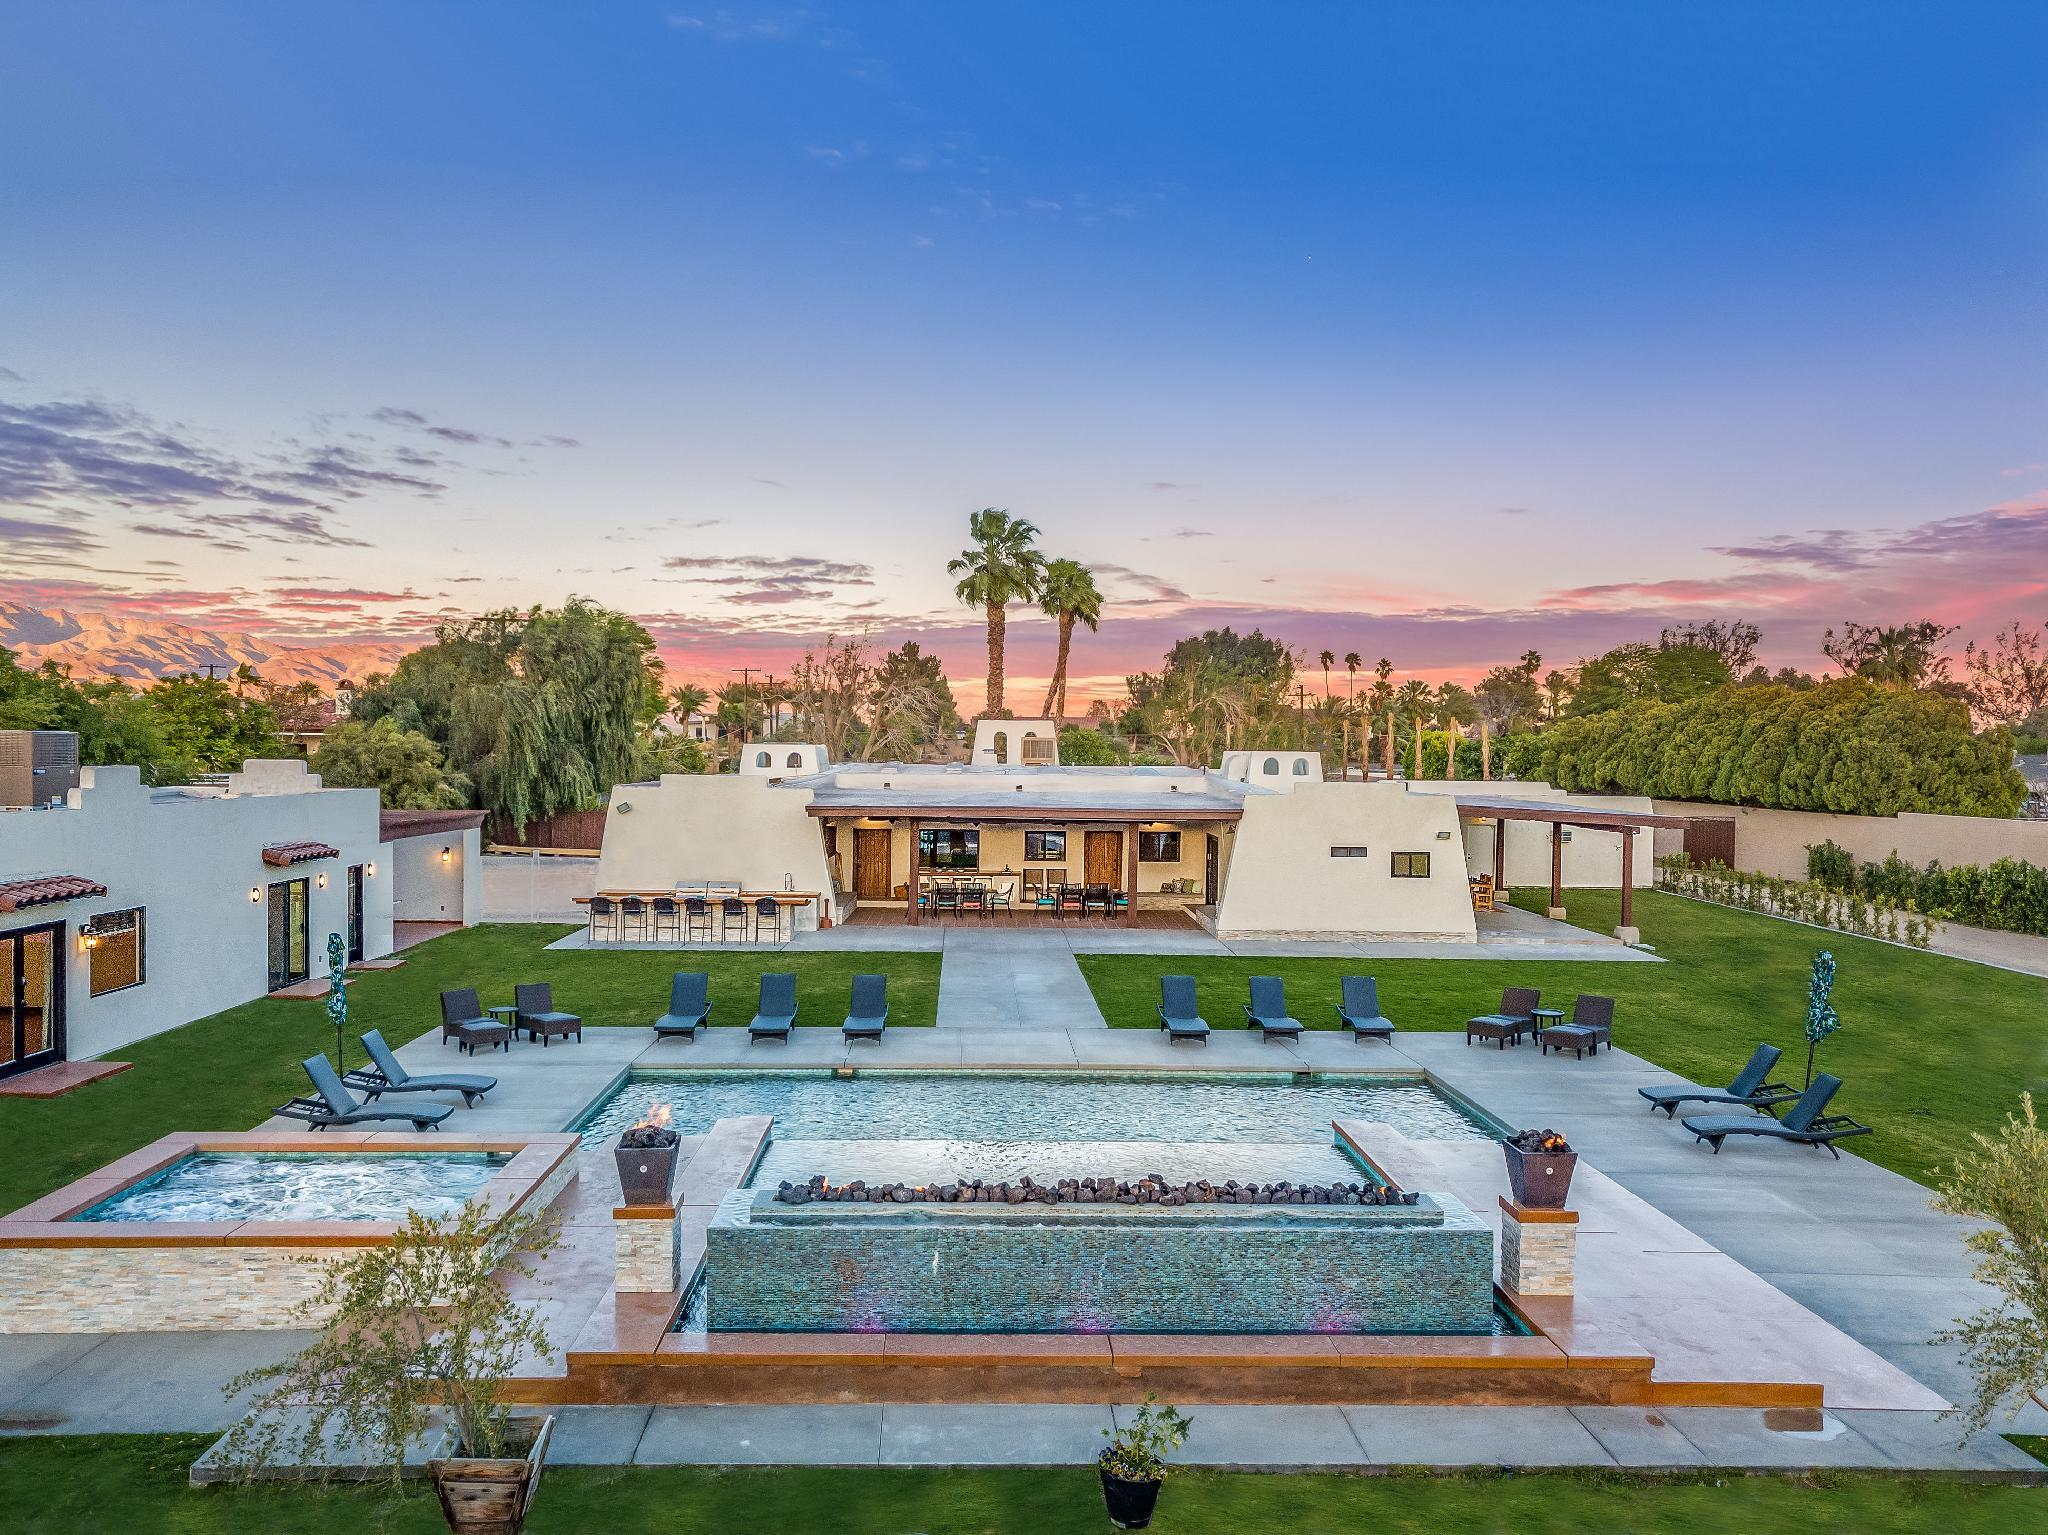 Carter · The Hacienda Estate: 9 Bedrooms, 9 Bathrooms